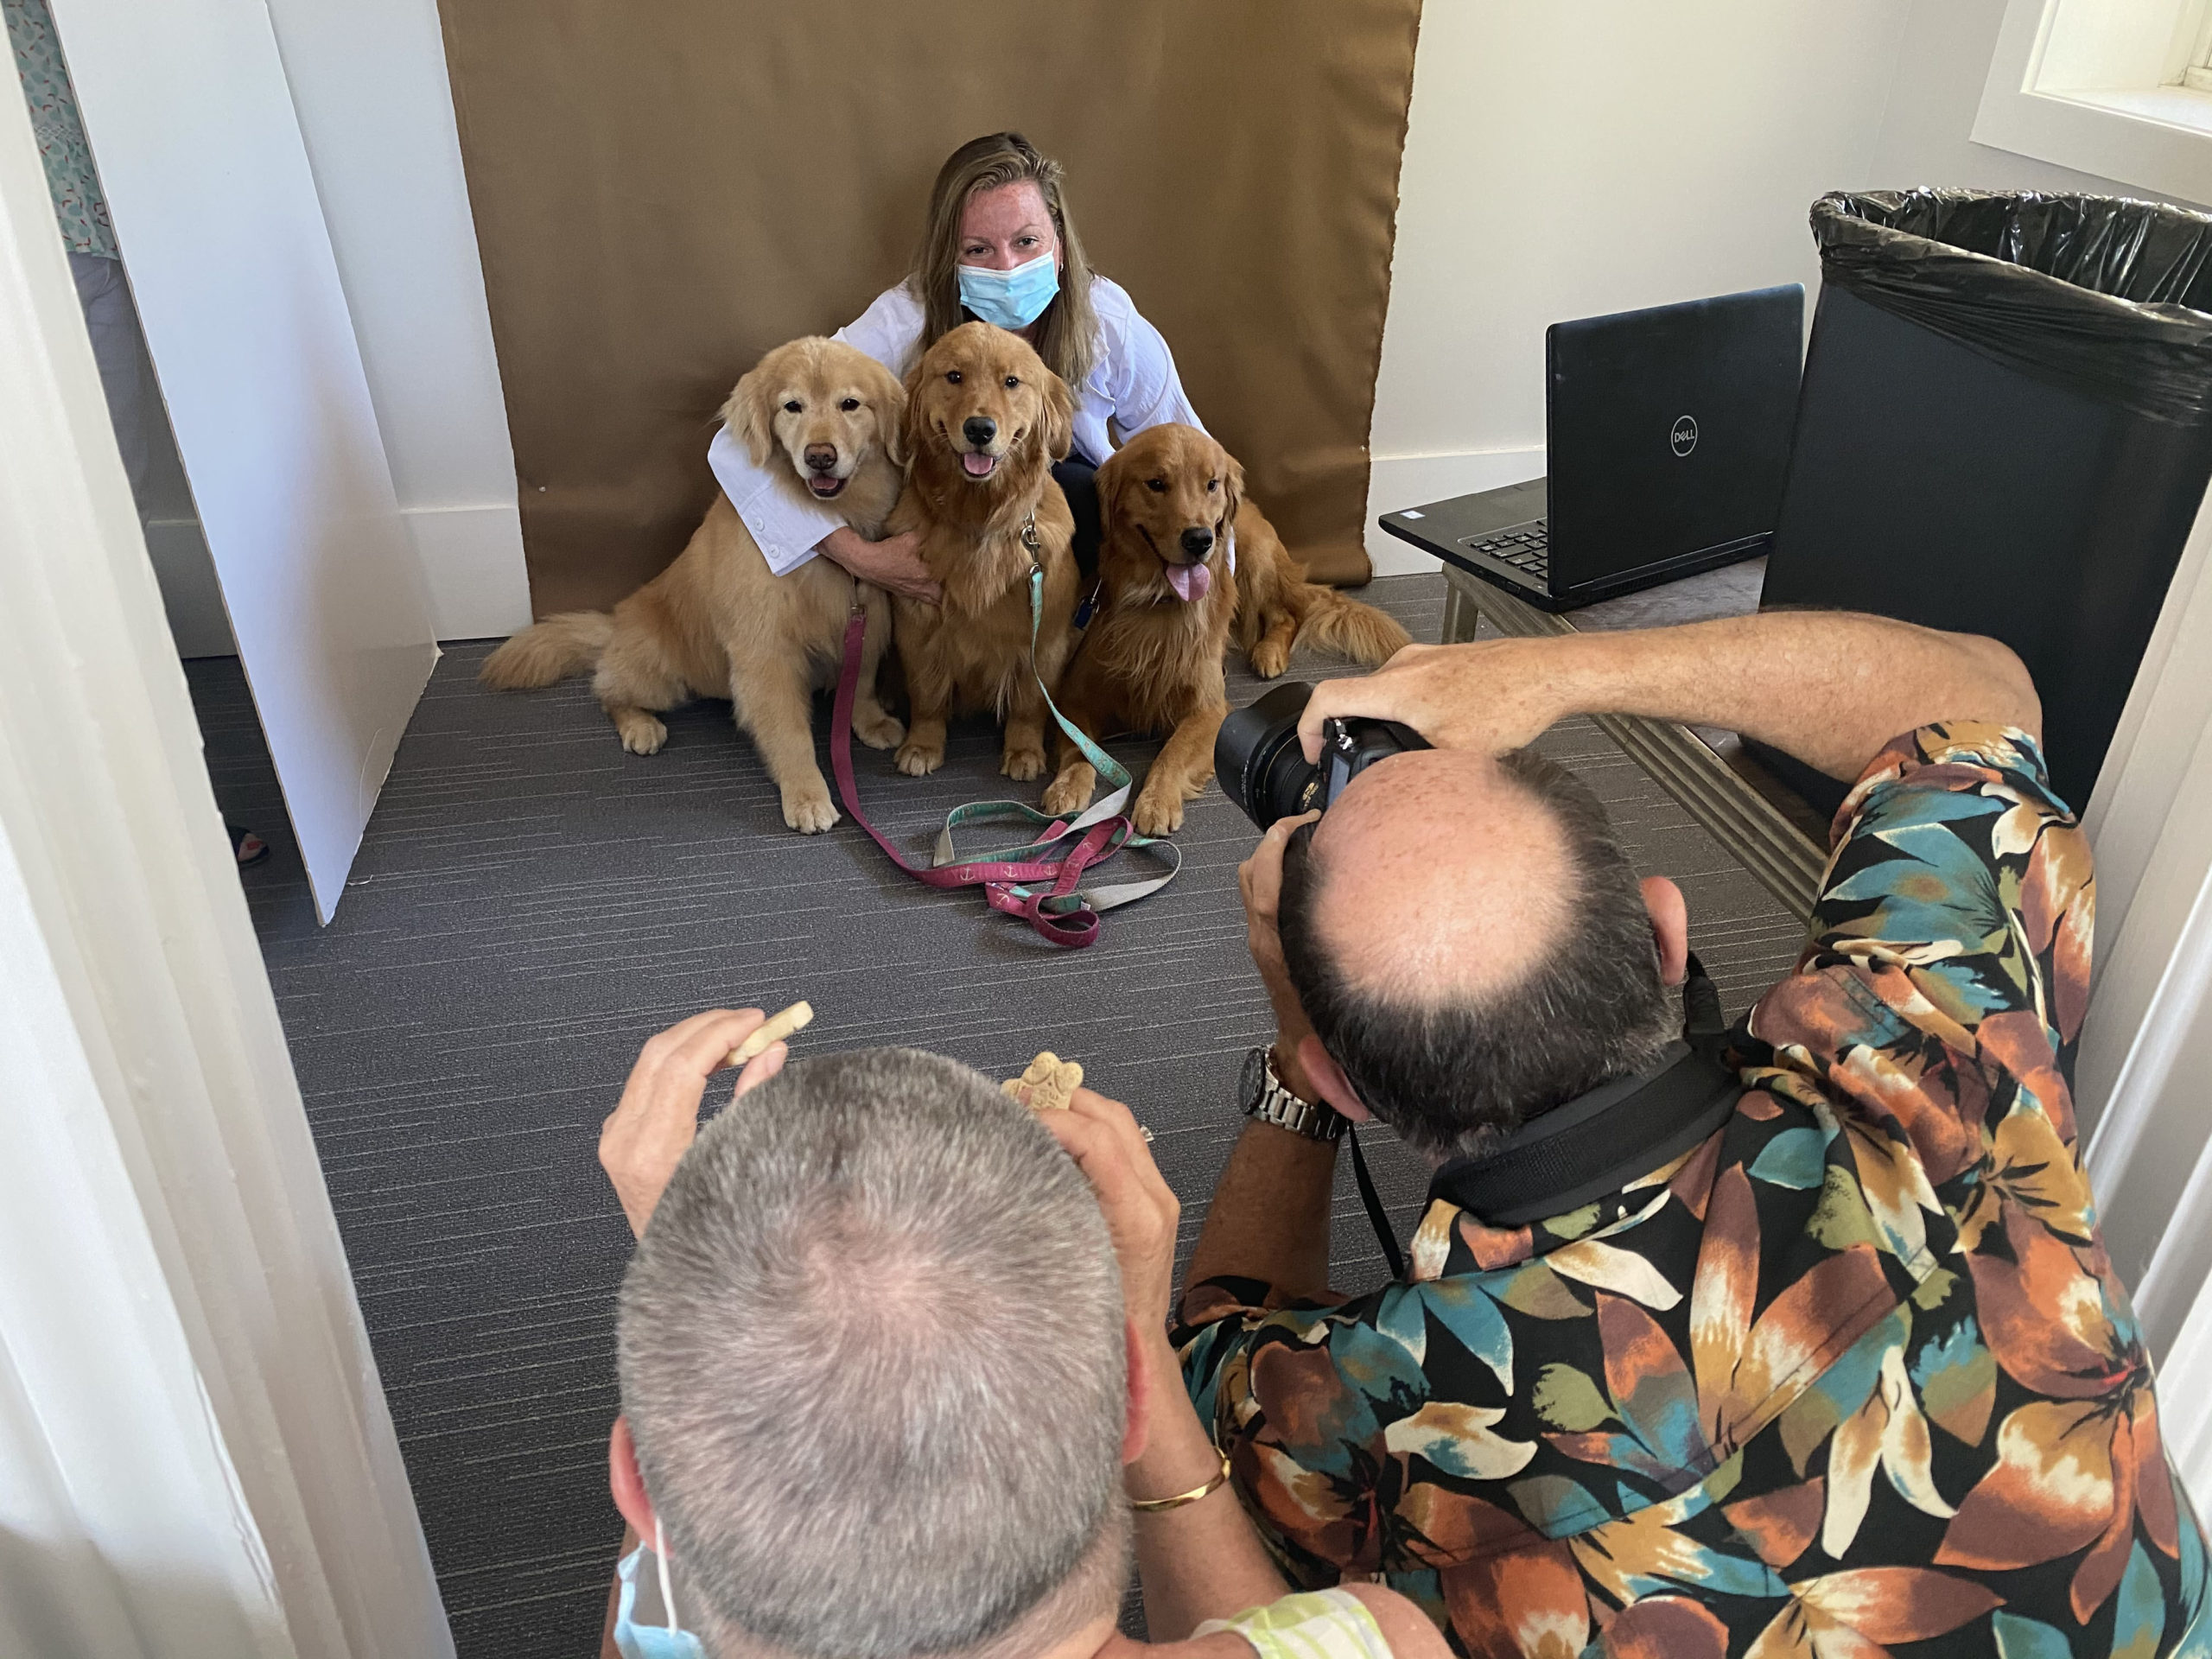 Dr. Dawn Stelling, a veterinarian at Olde Towne Animal Hospital in Southampton, poses with her dogs at Southampton Village Hall on Thursday, July 2 for the